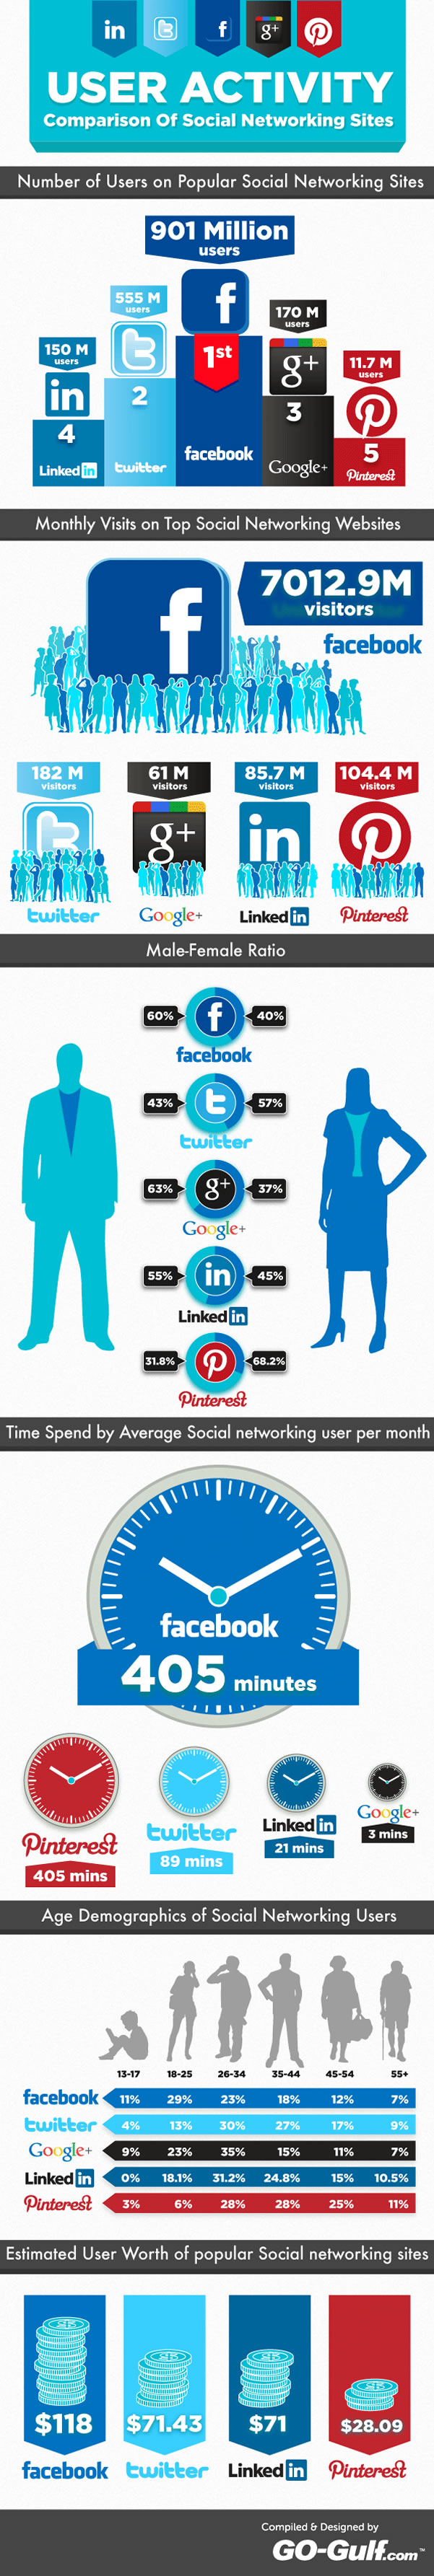 Comparación Facebook, Twitter, Google Plus, LinkedIn y Pinterest